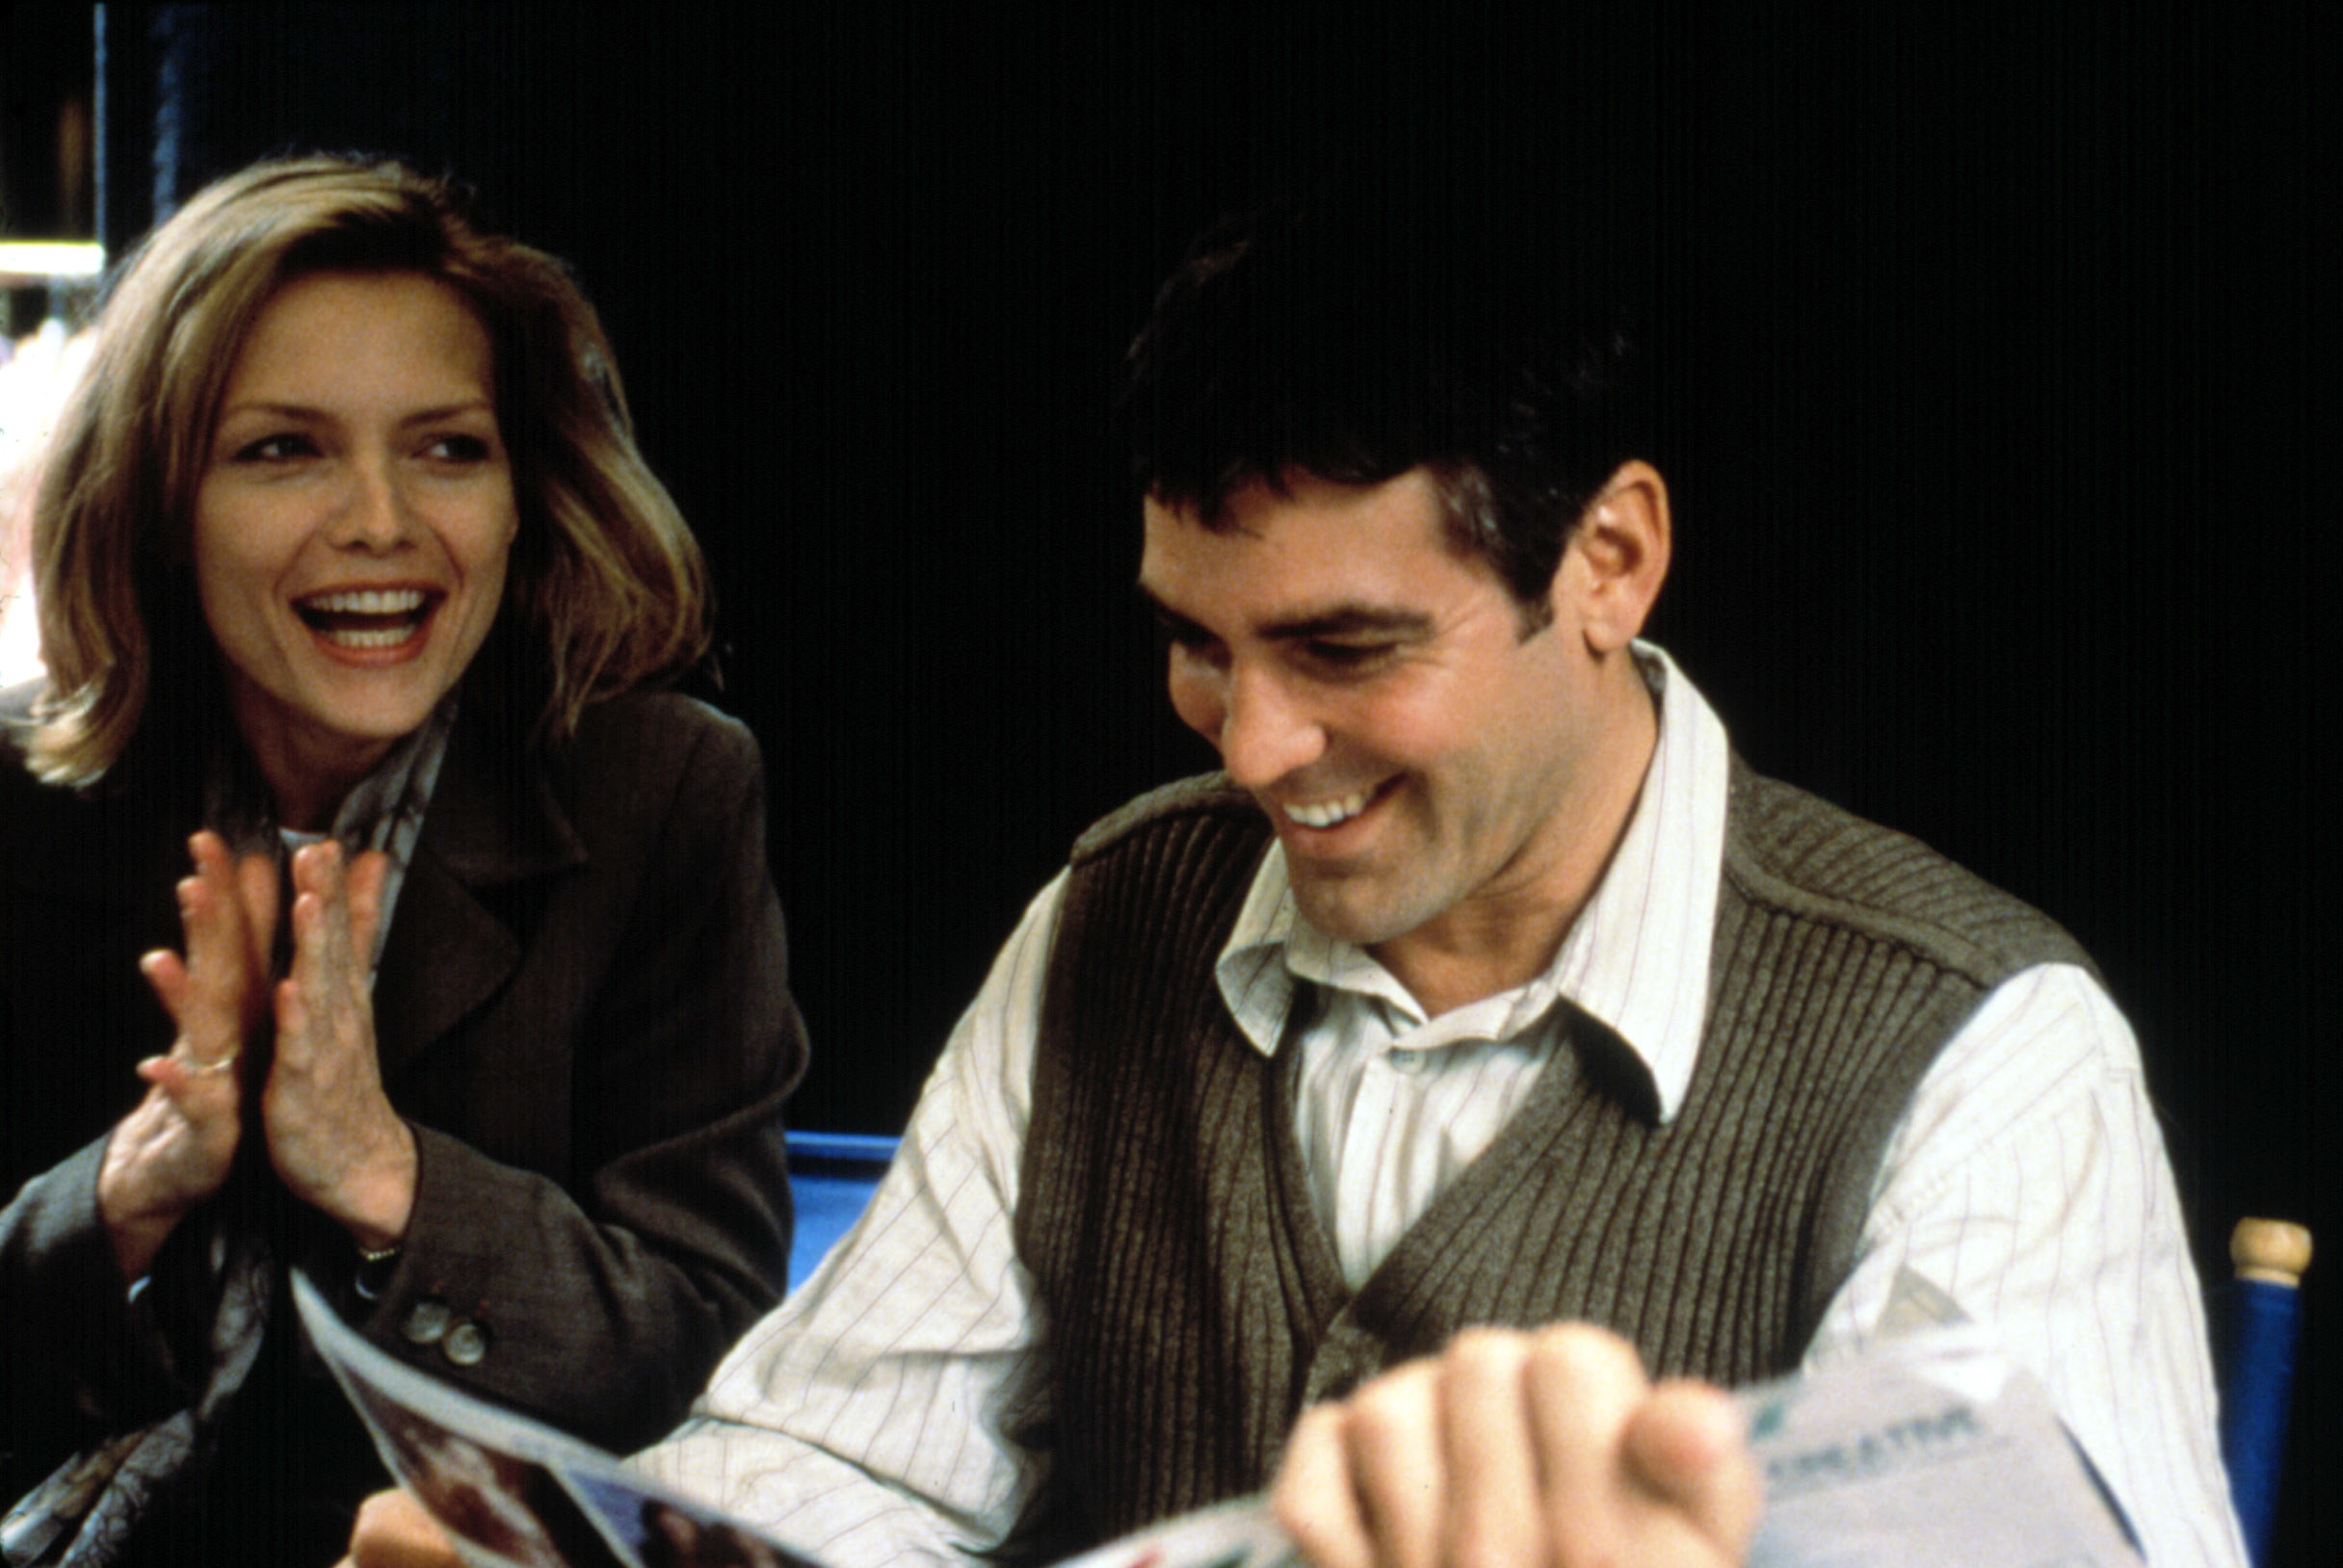 Michelle Pfeiffer and George Clooney laughing together in One Fine Day